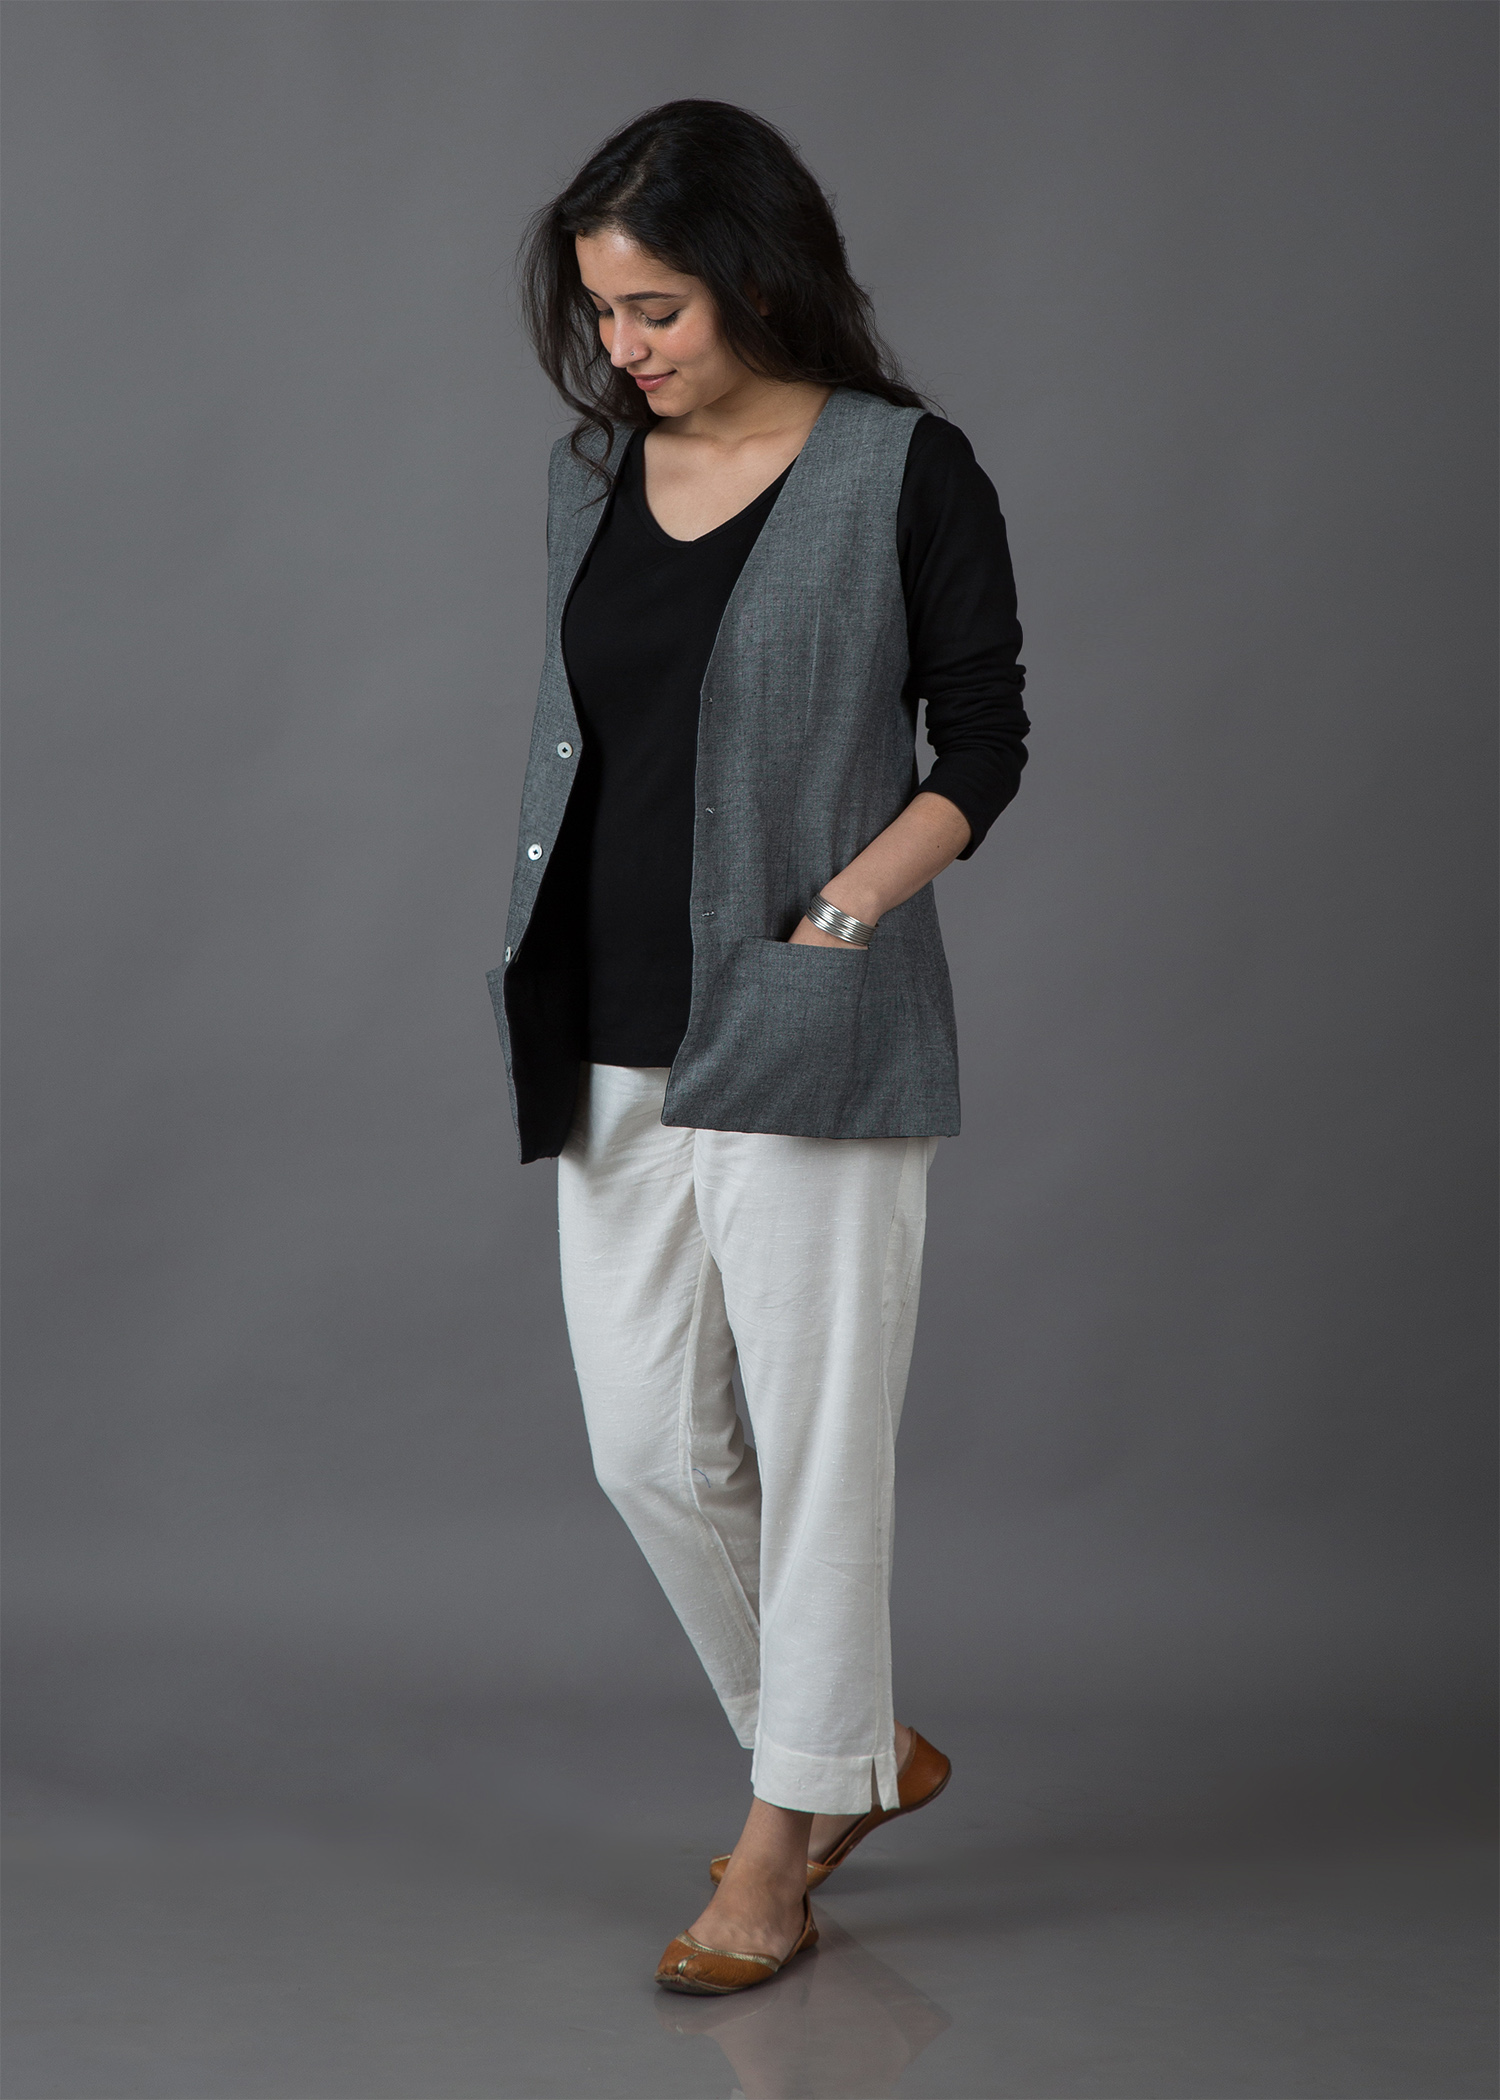 Metal Grey & Ink Black Handwoven Cotton Reversible Jacket